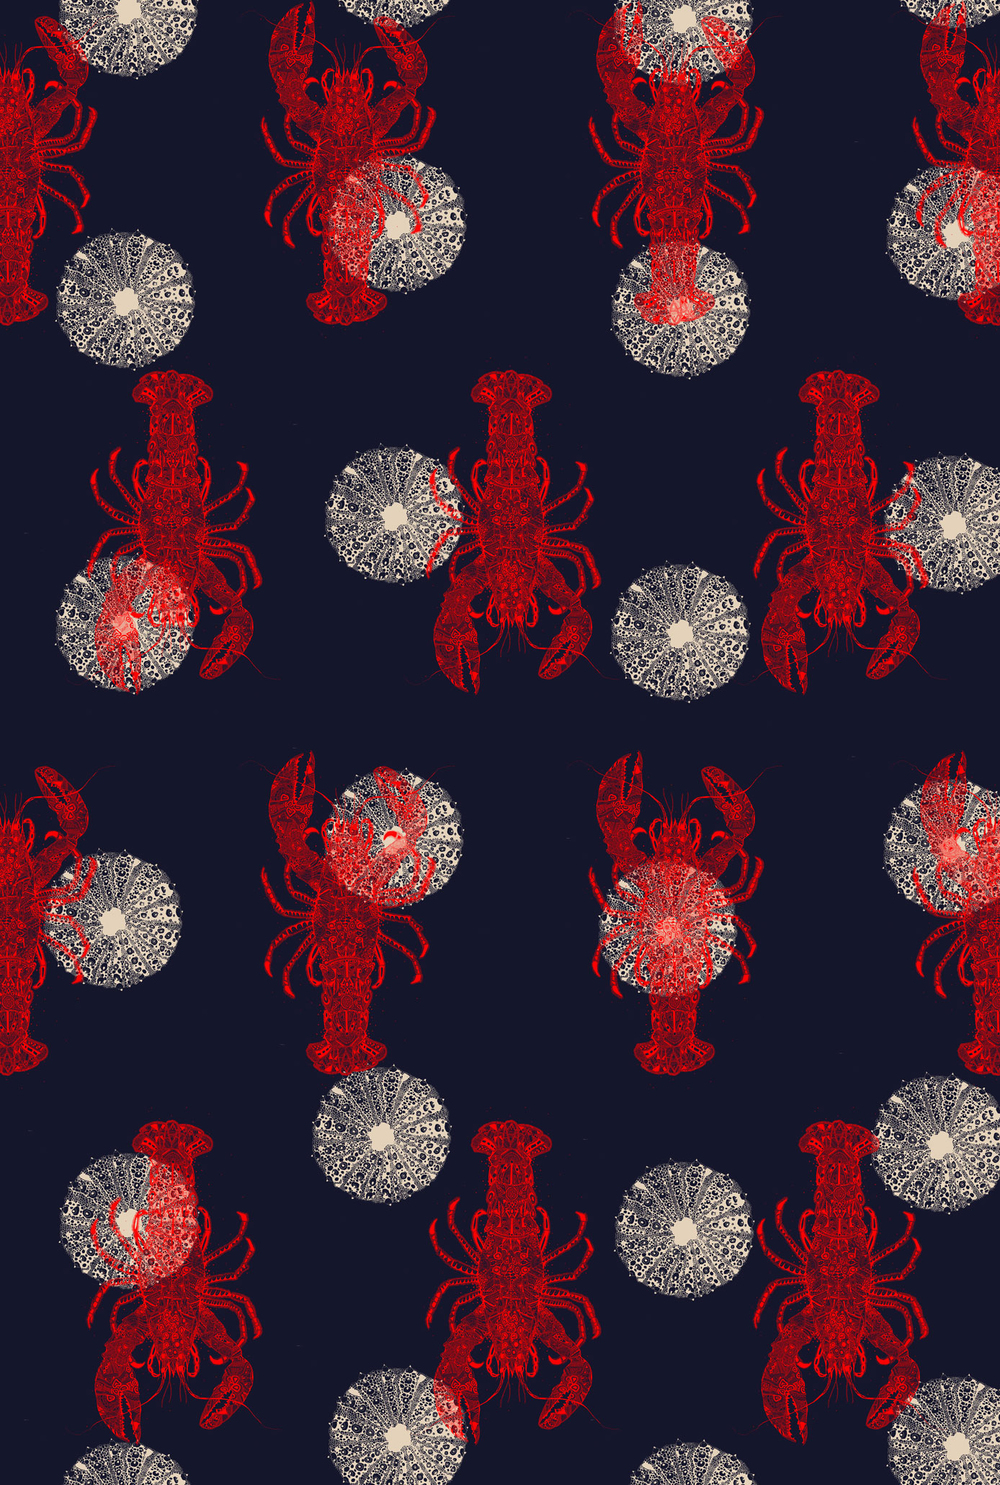 lobster_wallpaper_navyred.jpg